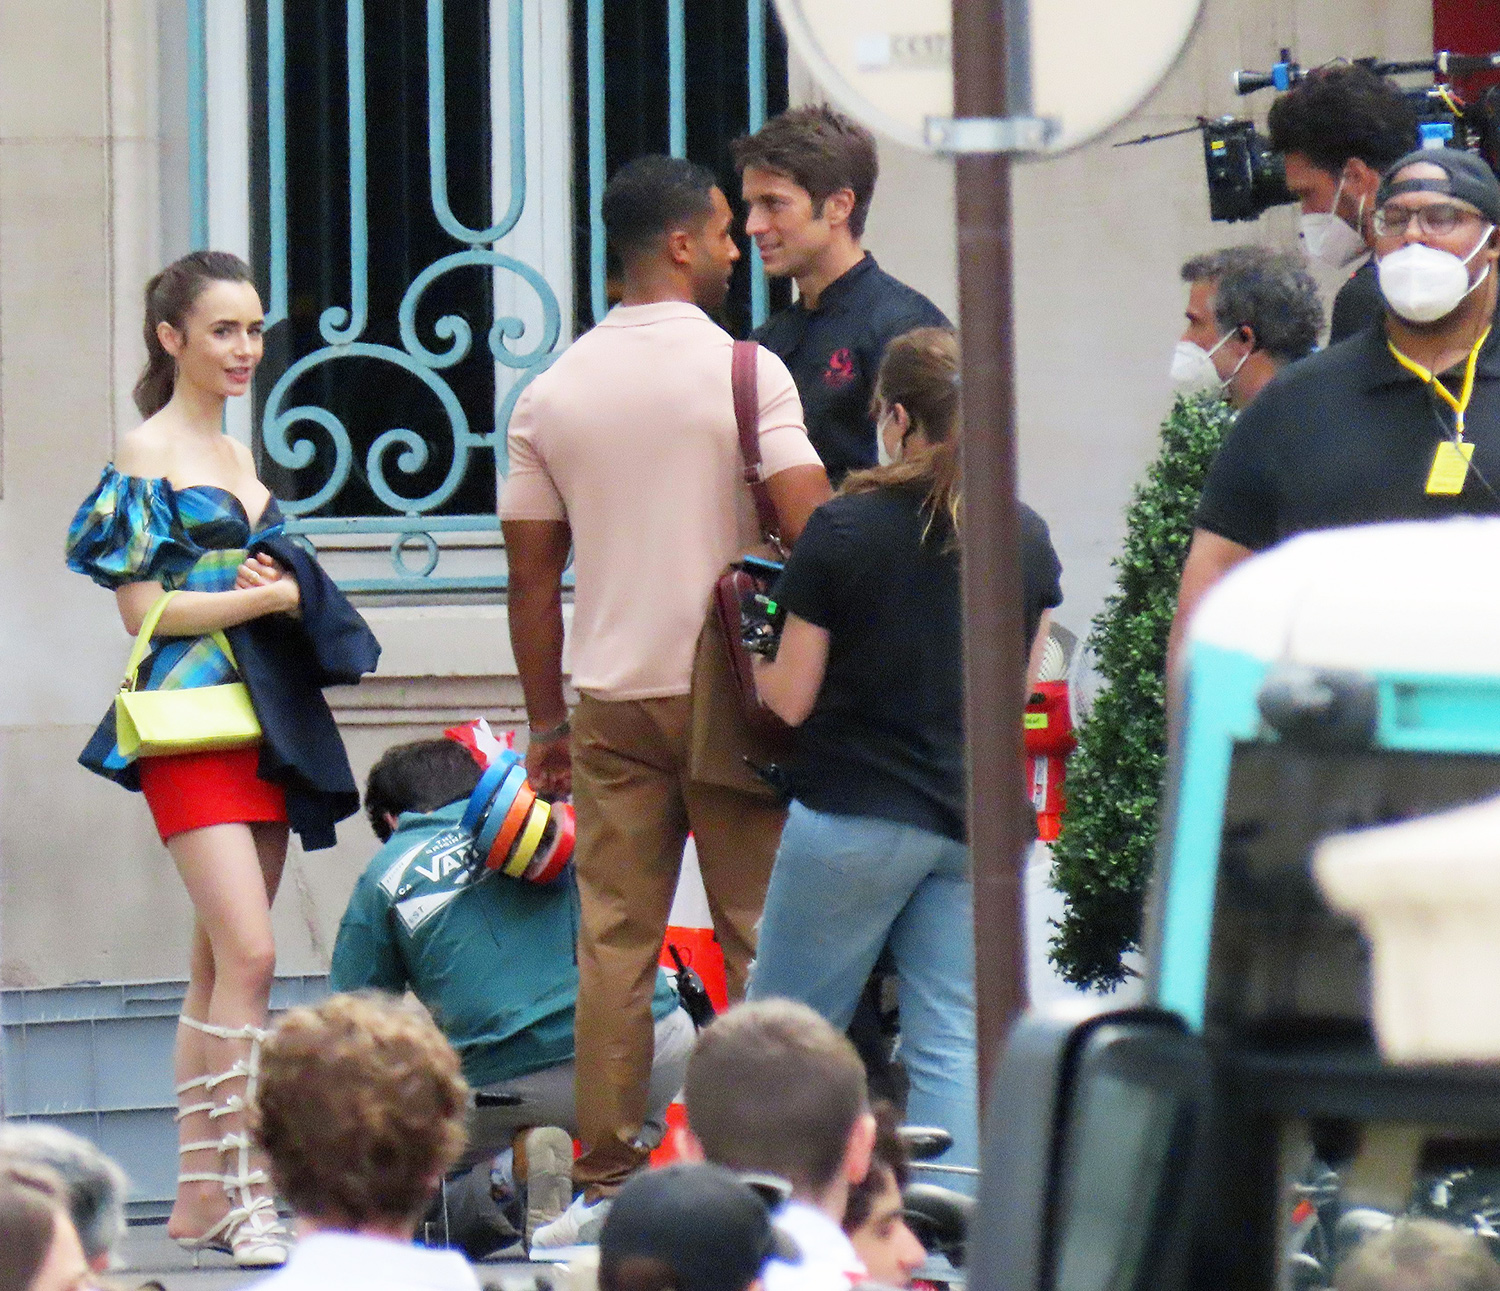 Lily Collins on the film set of Emily in Paris, season 2. 09 Jul 2021 Pictured: Lily Collins.